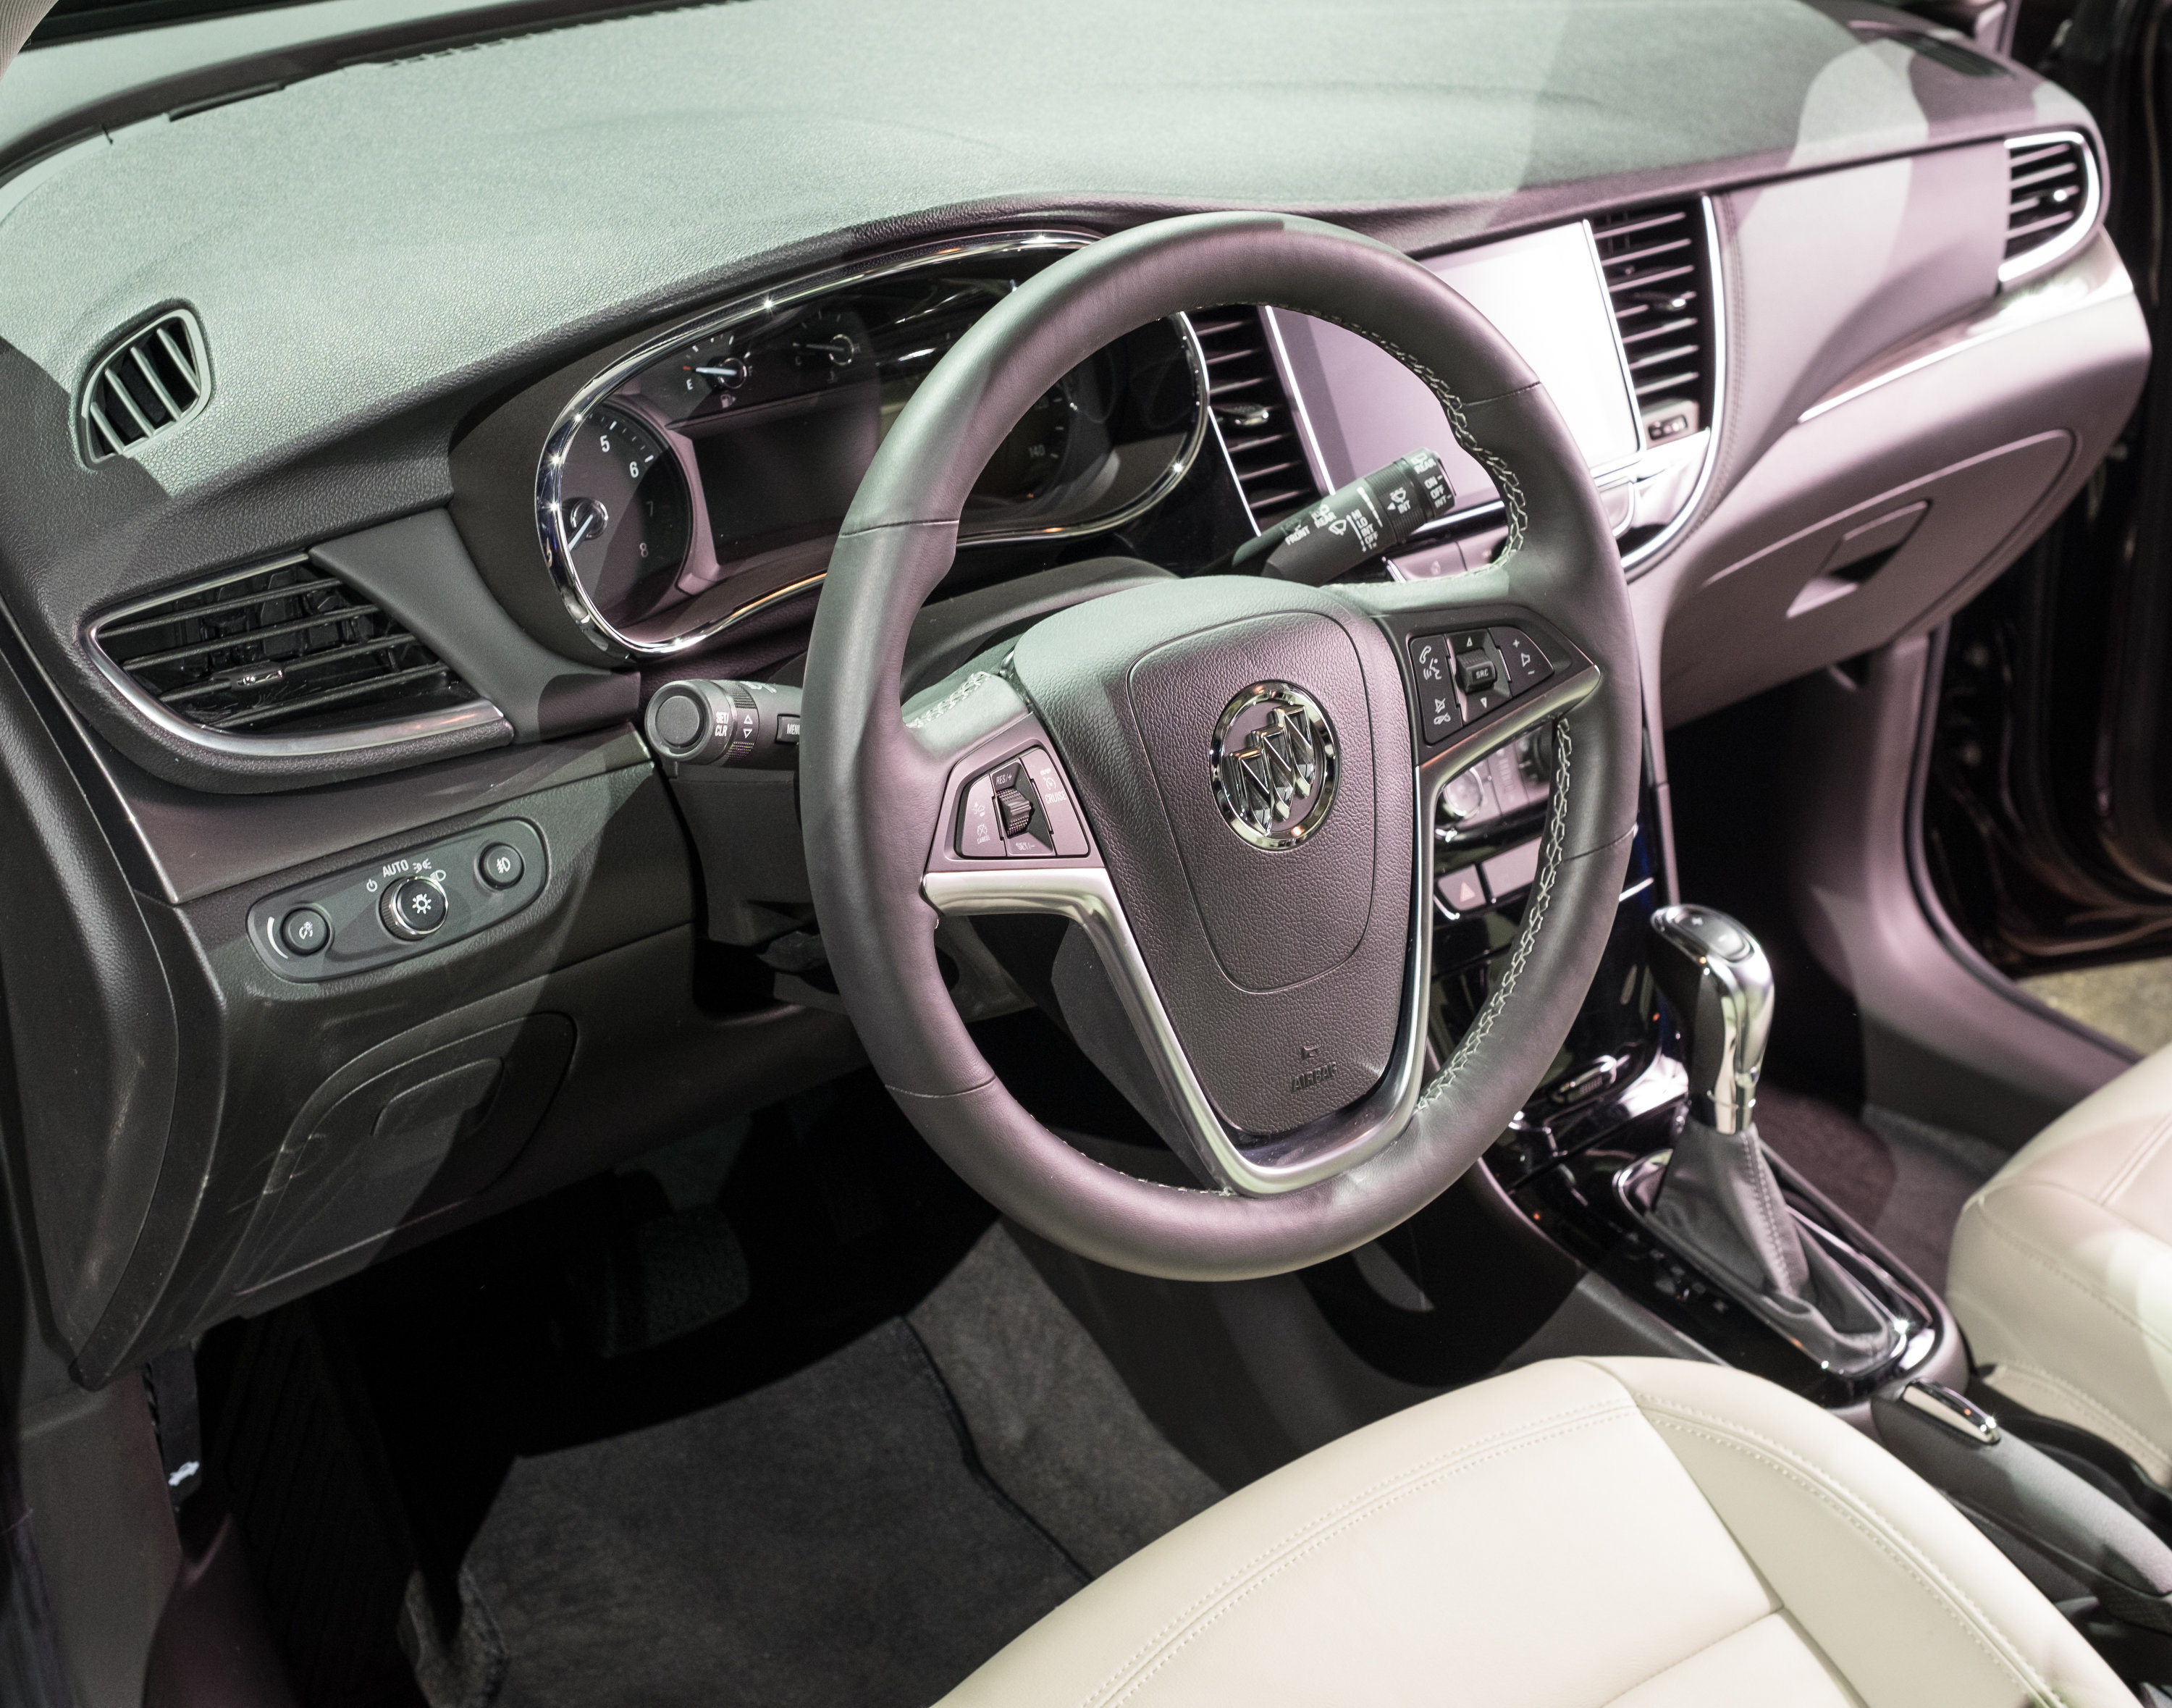 Manufacturer photo: A new front-end appearance and a new premium interior highlight the visual refinements on the 2017 Buick Encore, while Apple CarPlay and Android Auto are supported by a next-generation IntelliLink system